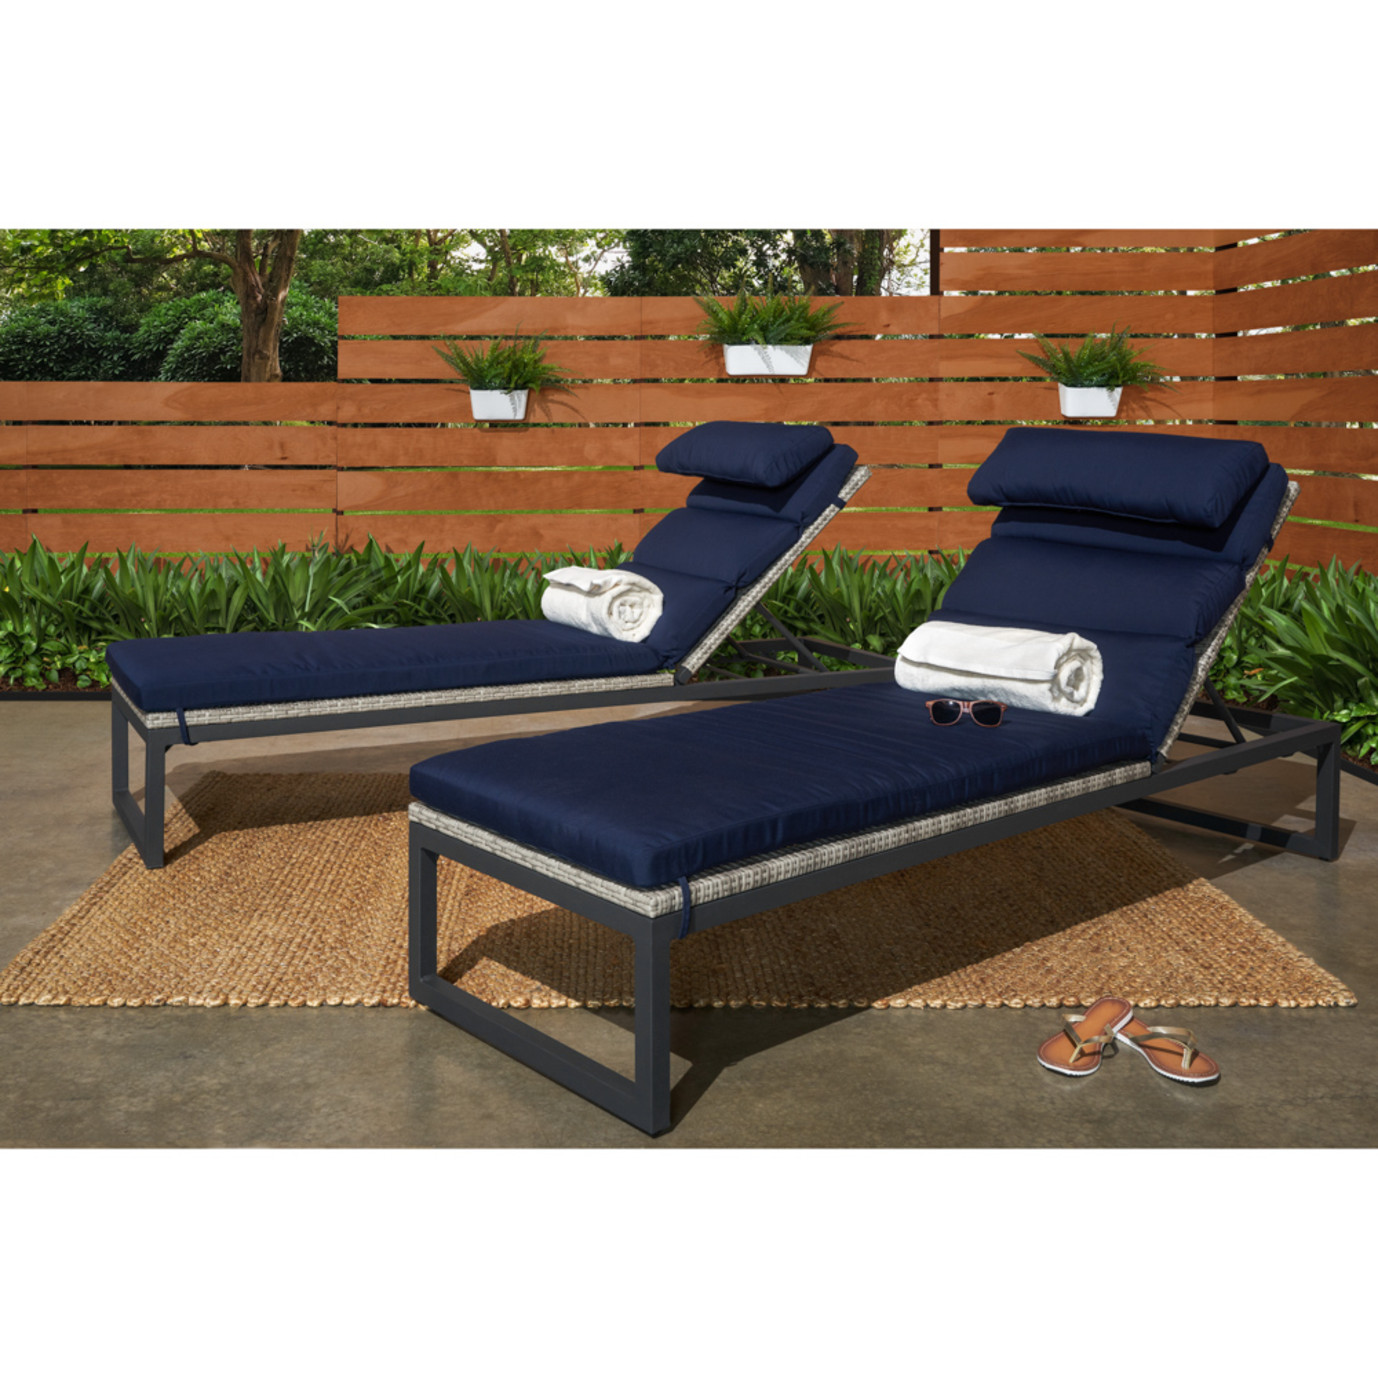 Milo™ Gray Chaise Lounges - Navy Blue